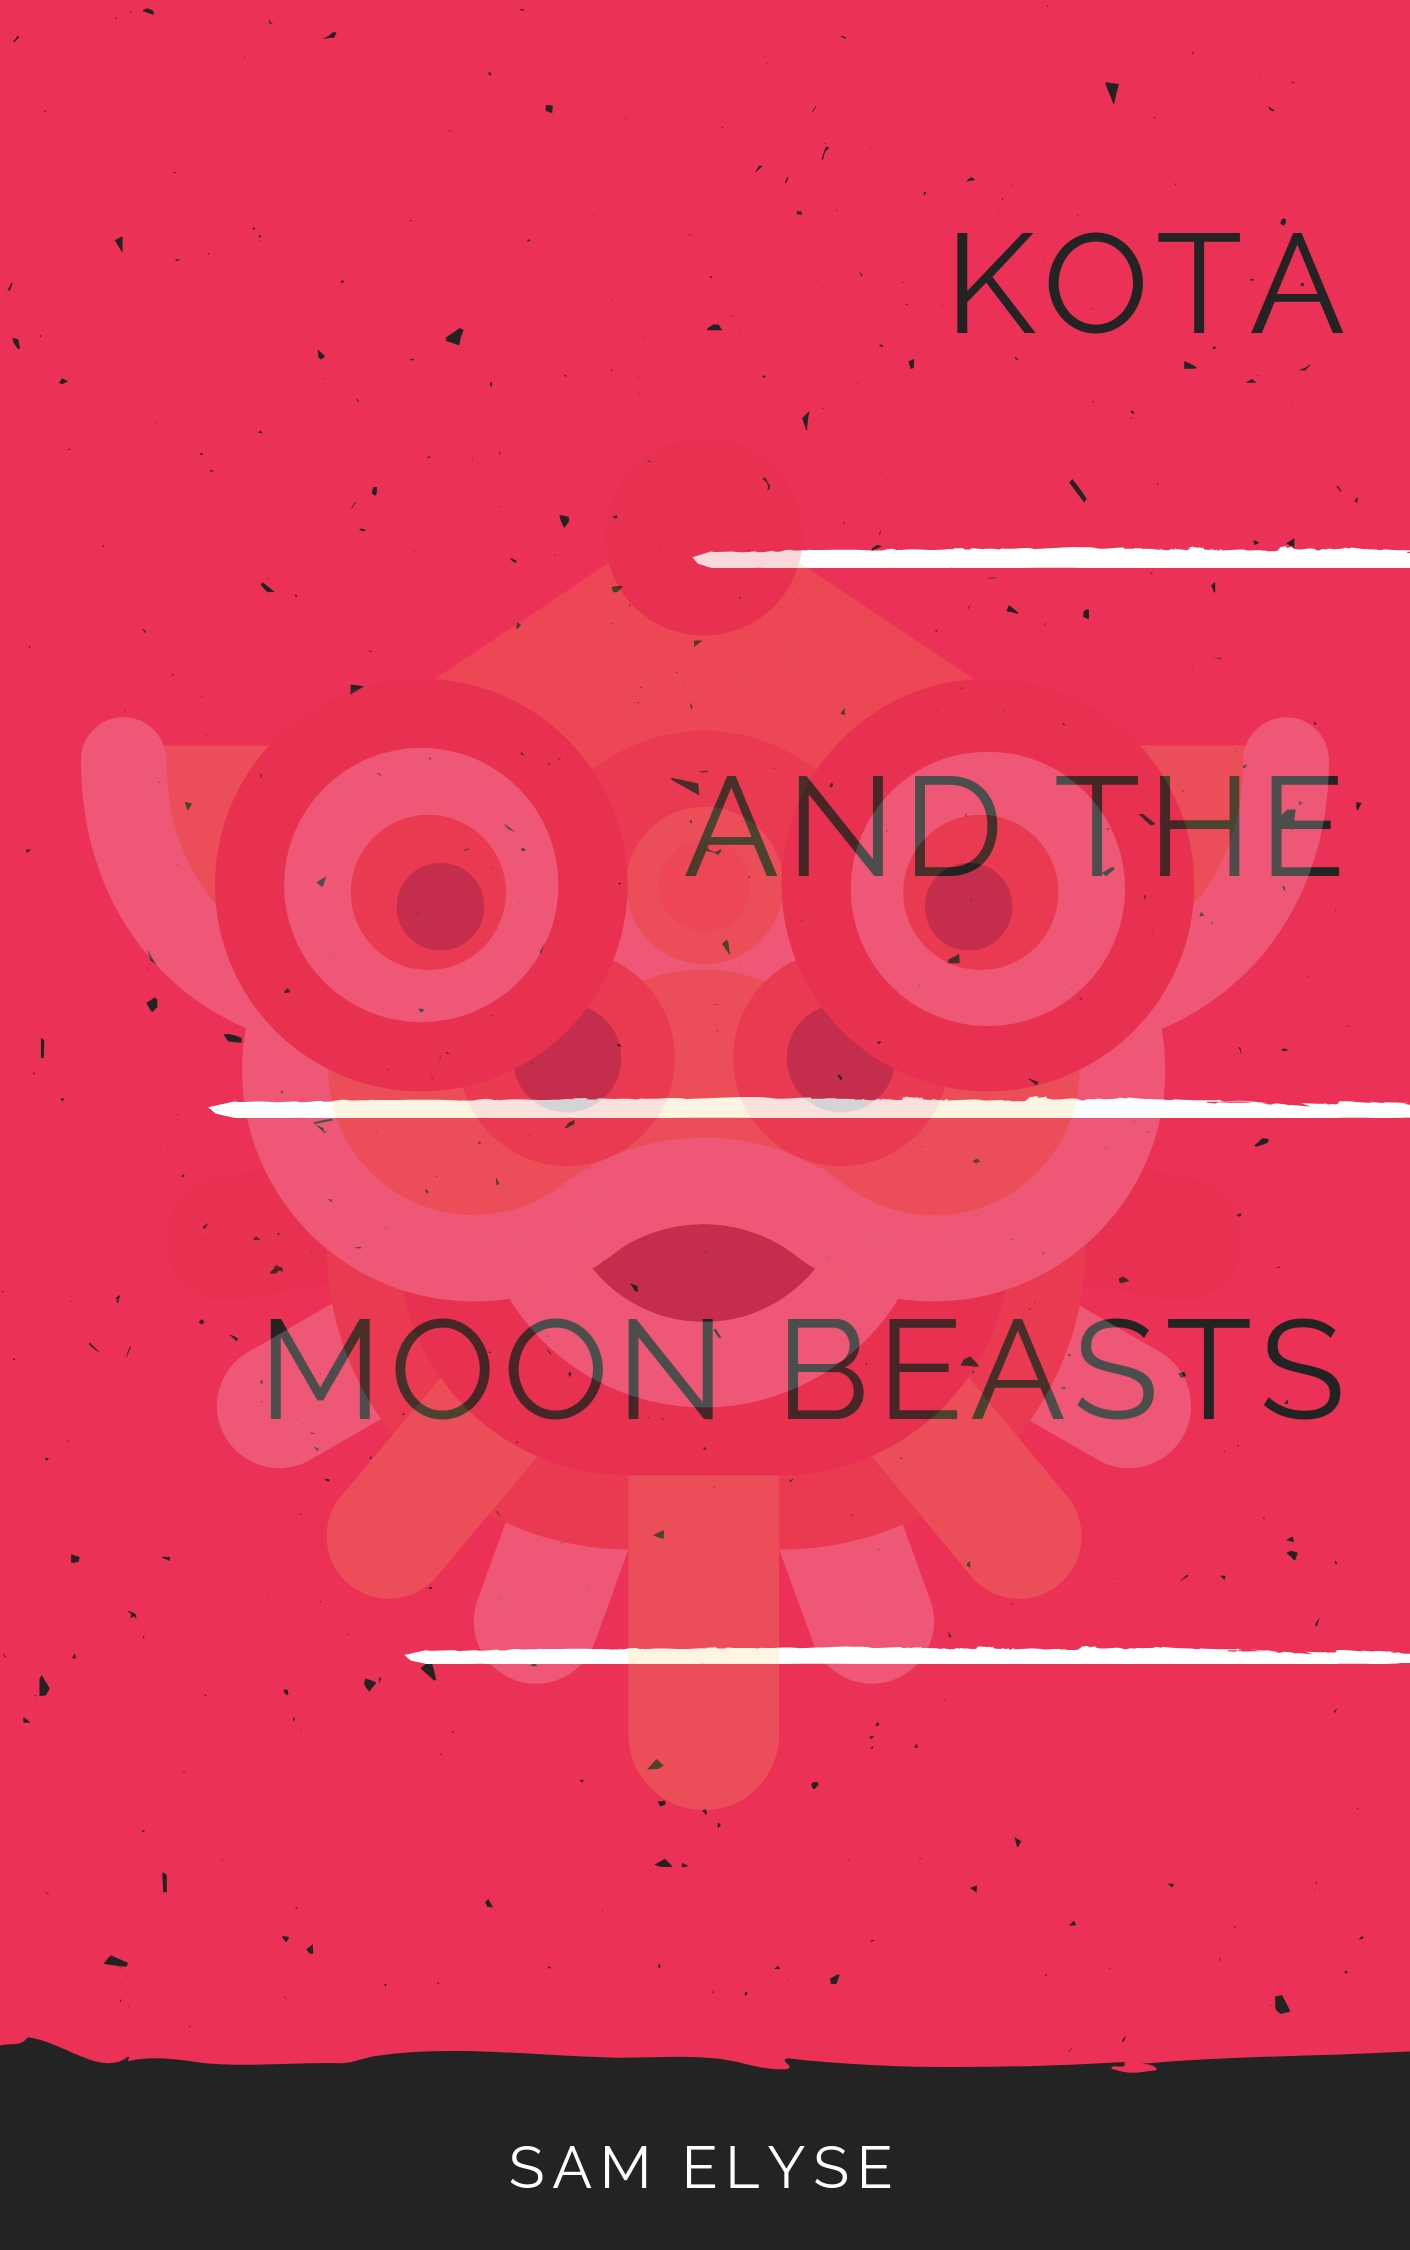 Kota and the Moon Beasts